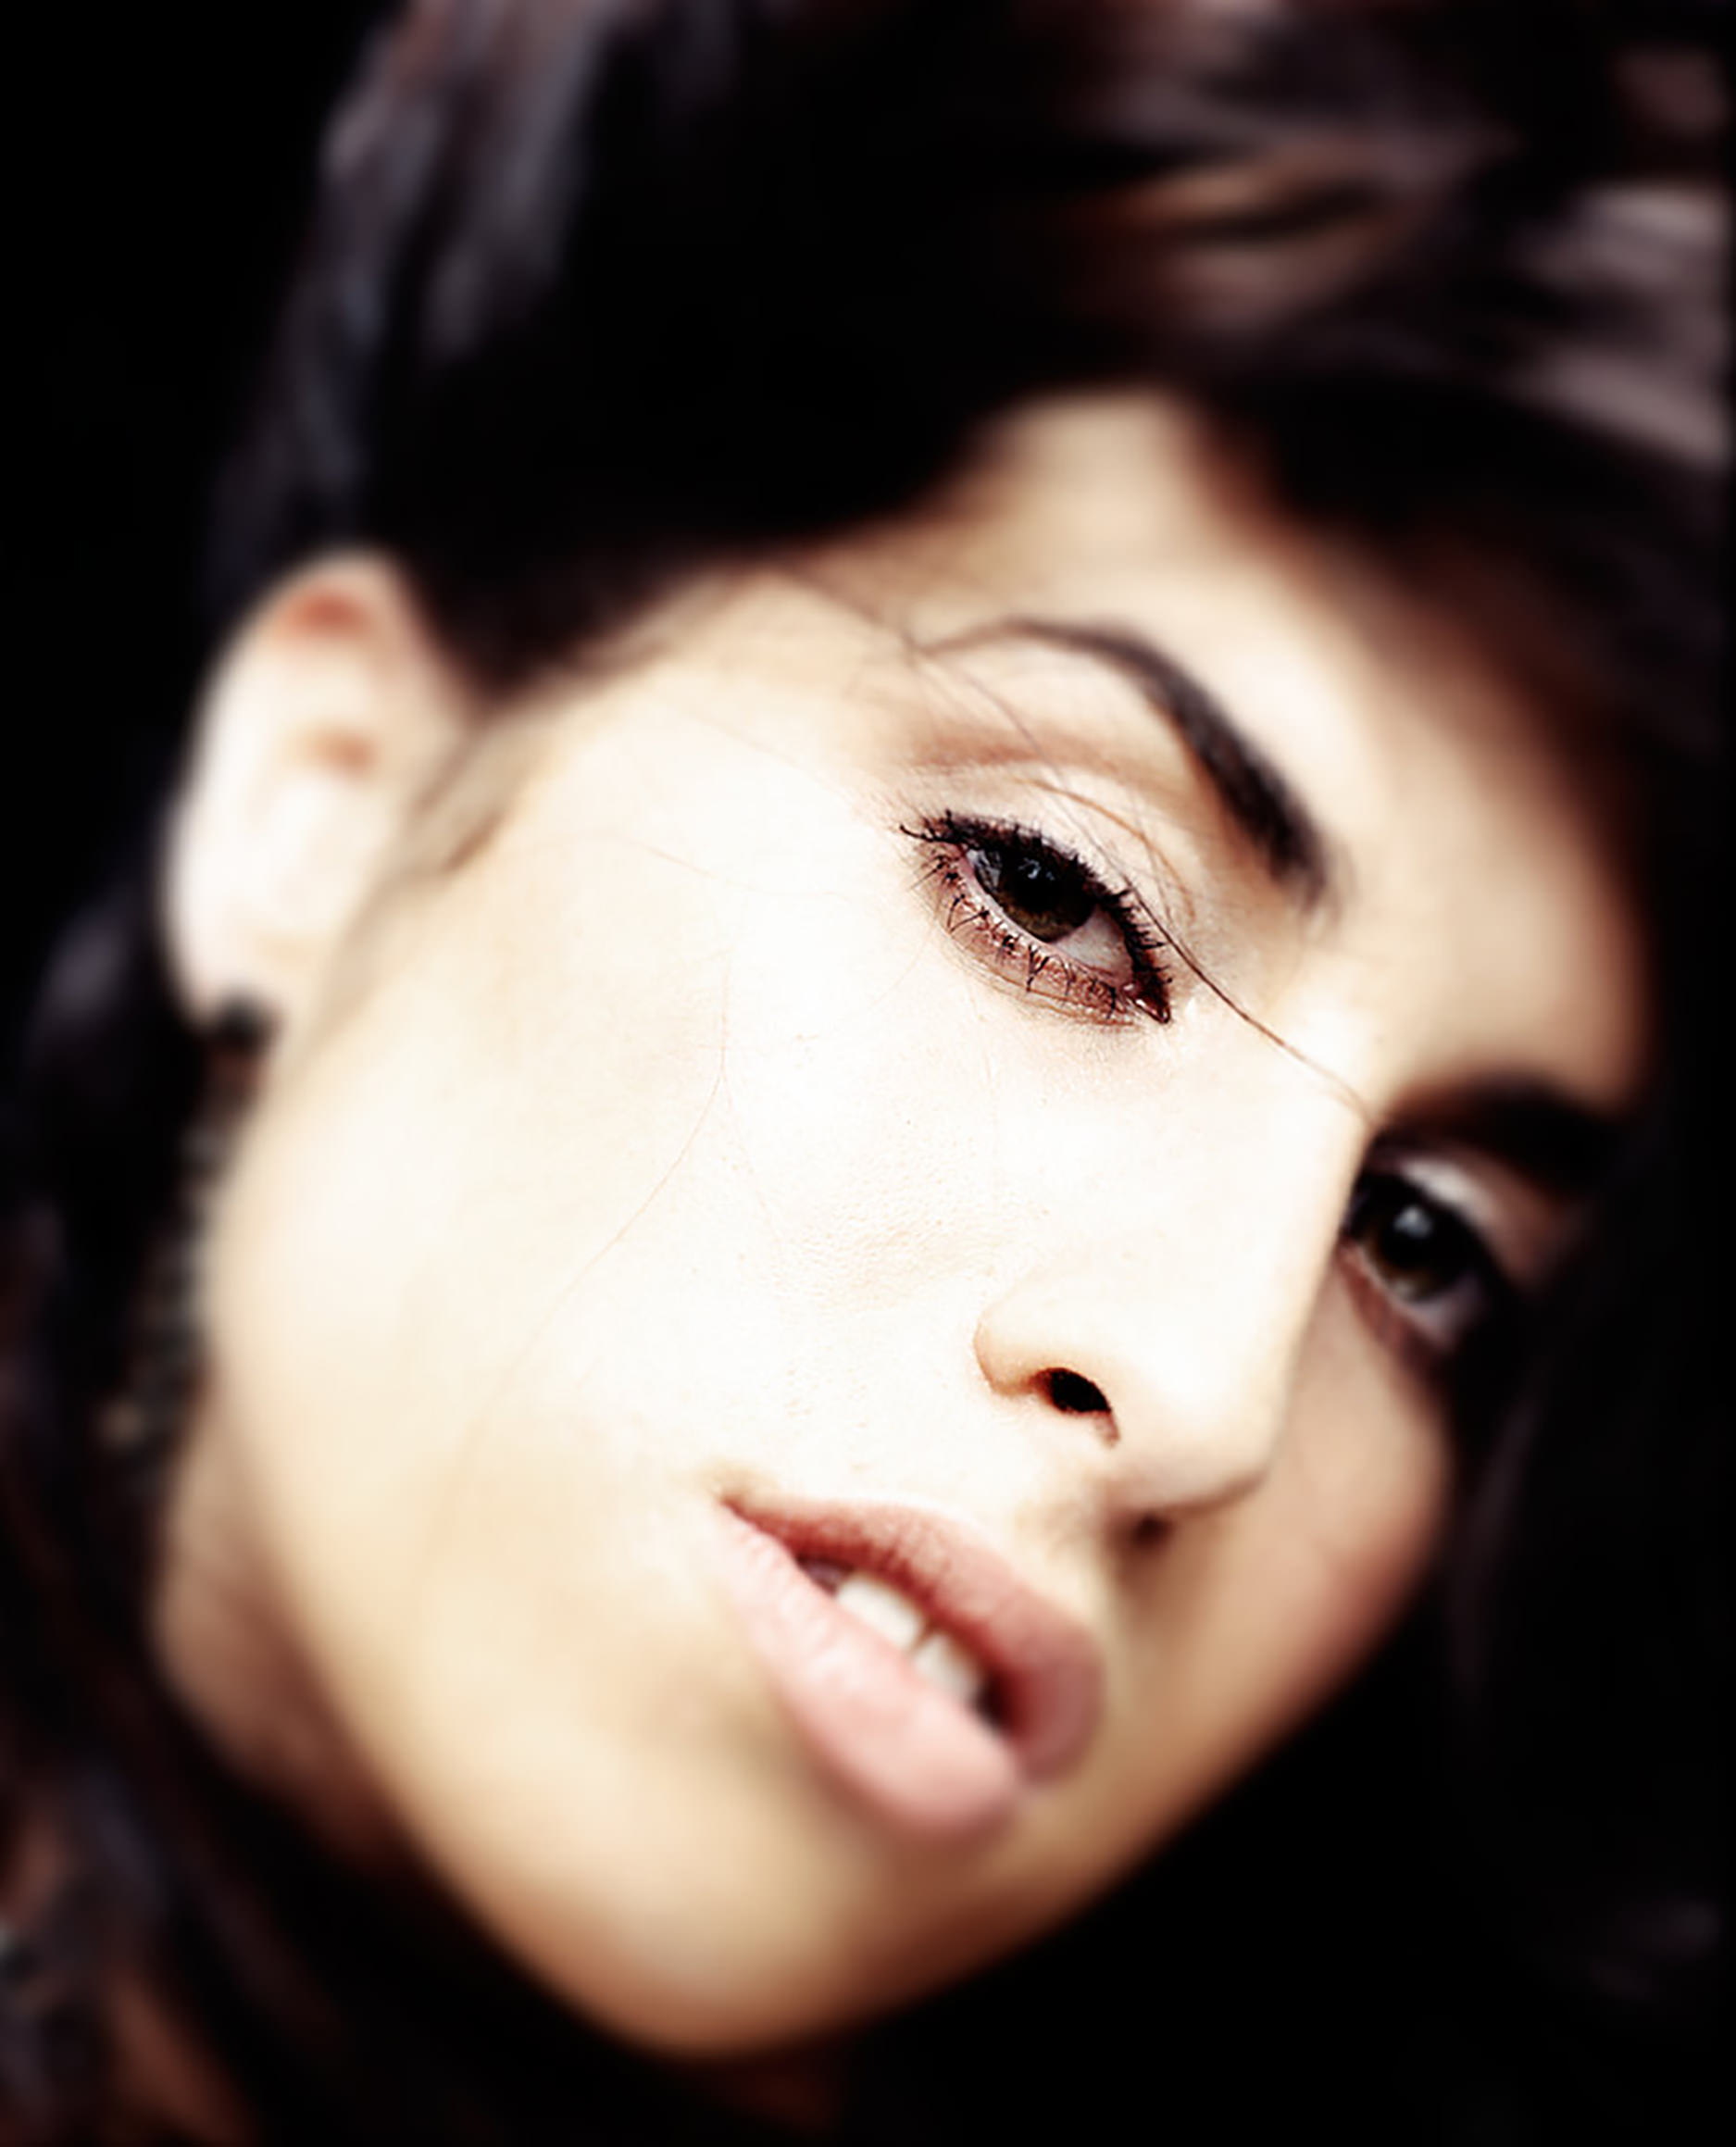 57e222023c59b0220543401c_Amy-Winehouse-cr-Phil-Knott-2563-2016-billboard-1240